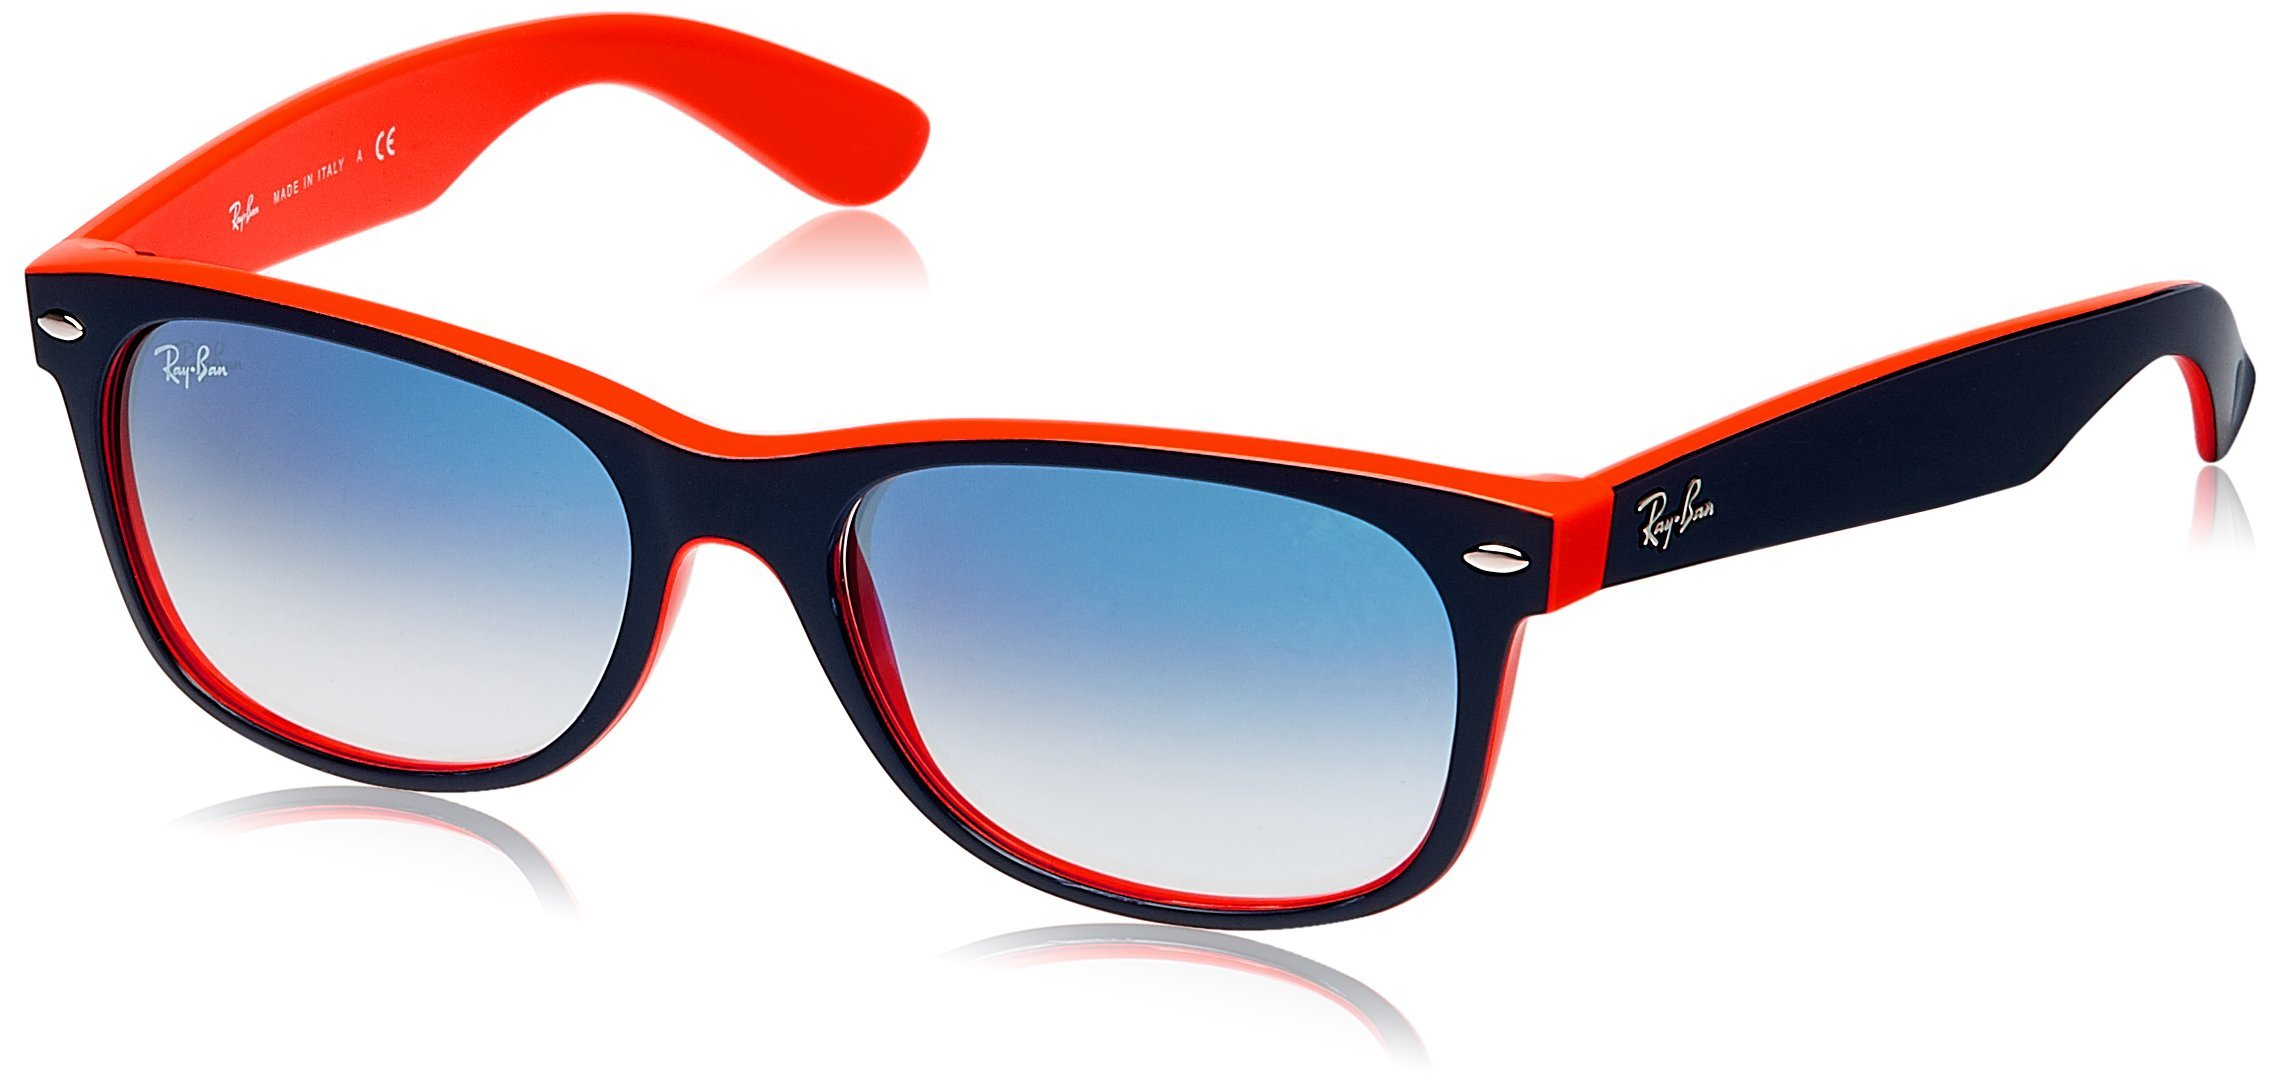 RAY-BAN RB2132 New Wayfarer Sunglasses, Blue & Orange/Blue Gradient, 55 mm by RAY-BAN